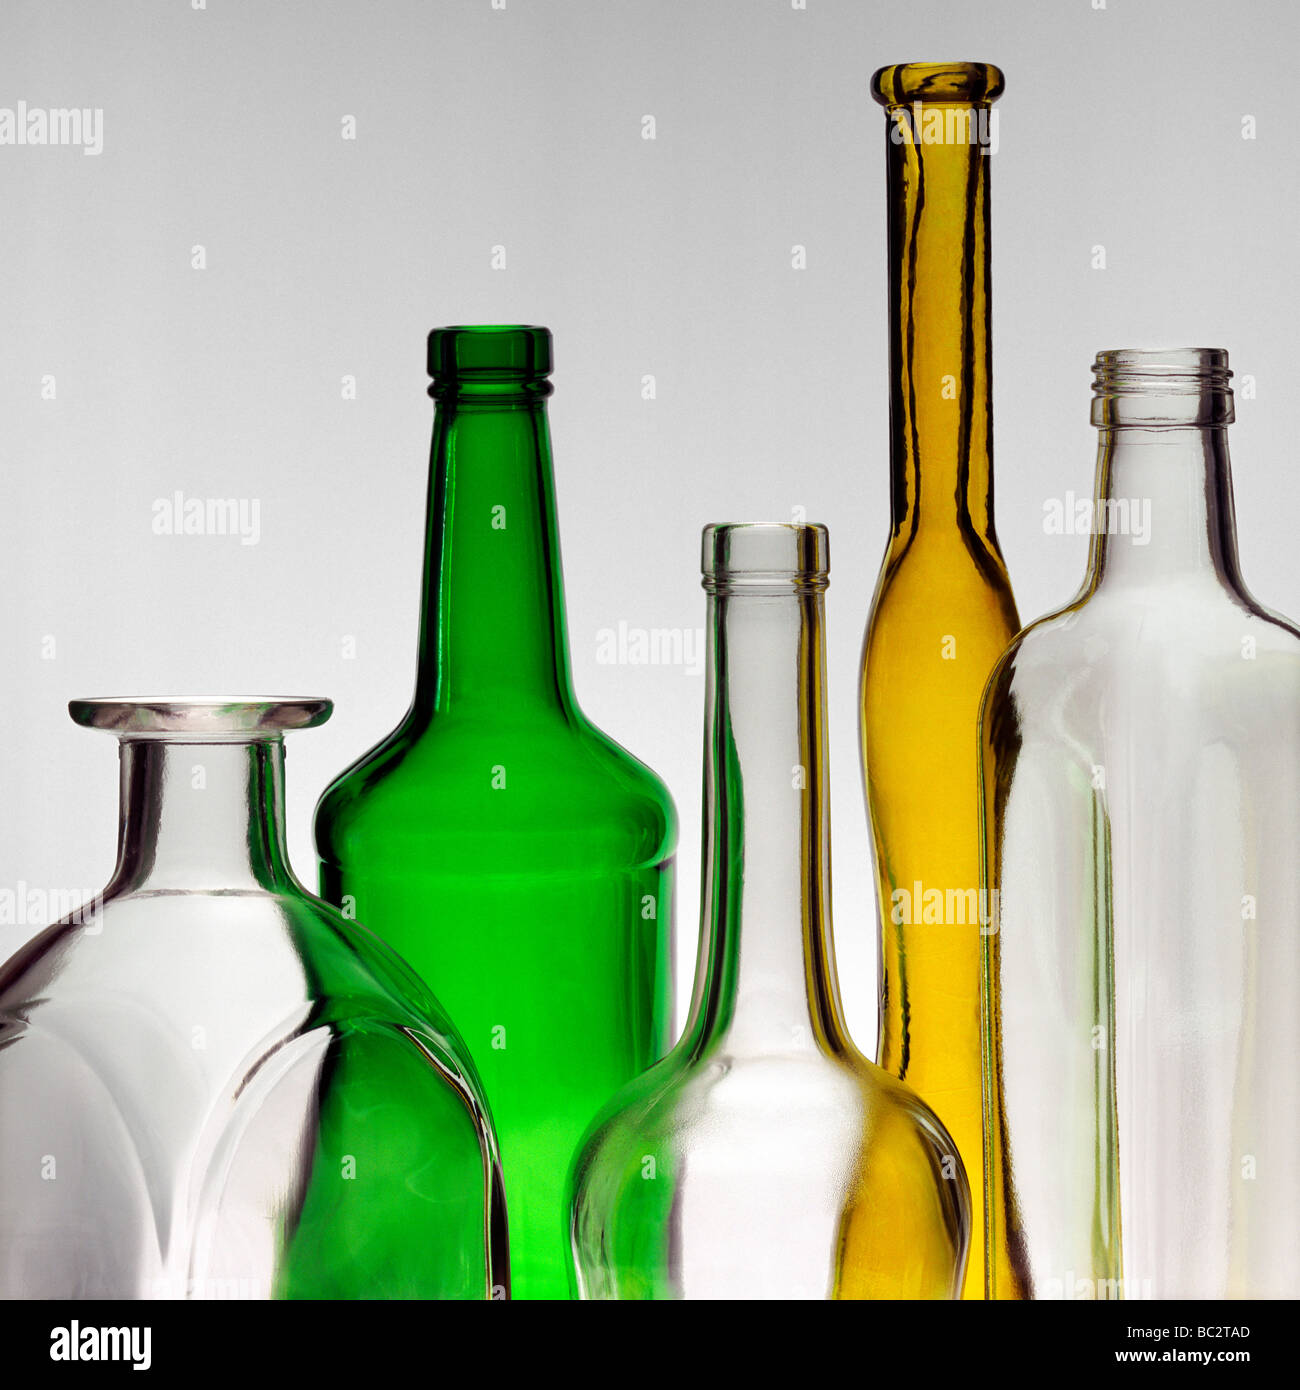 Still life of the of colored and non colored glass bottles - Stock Image